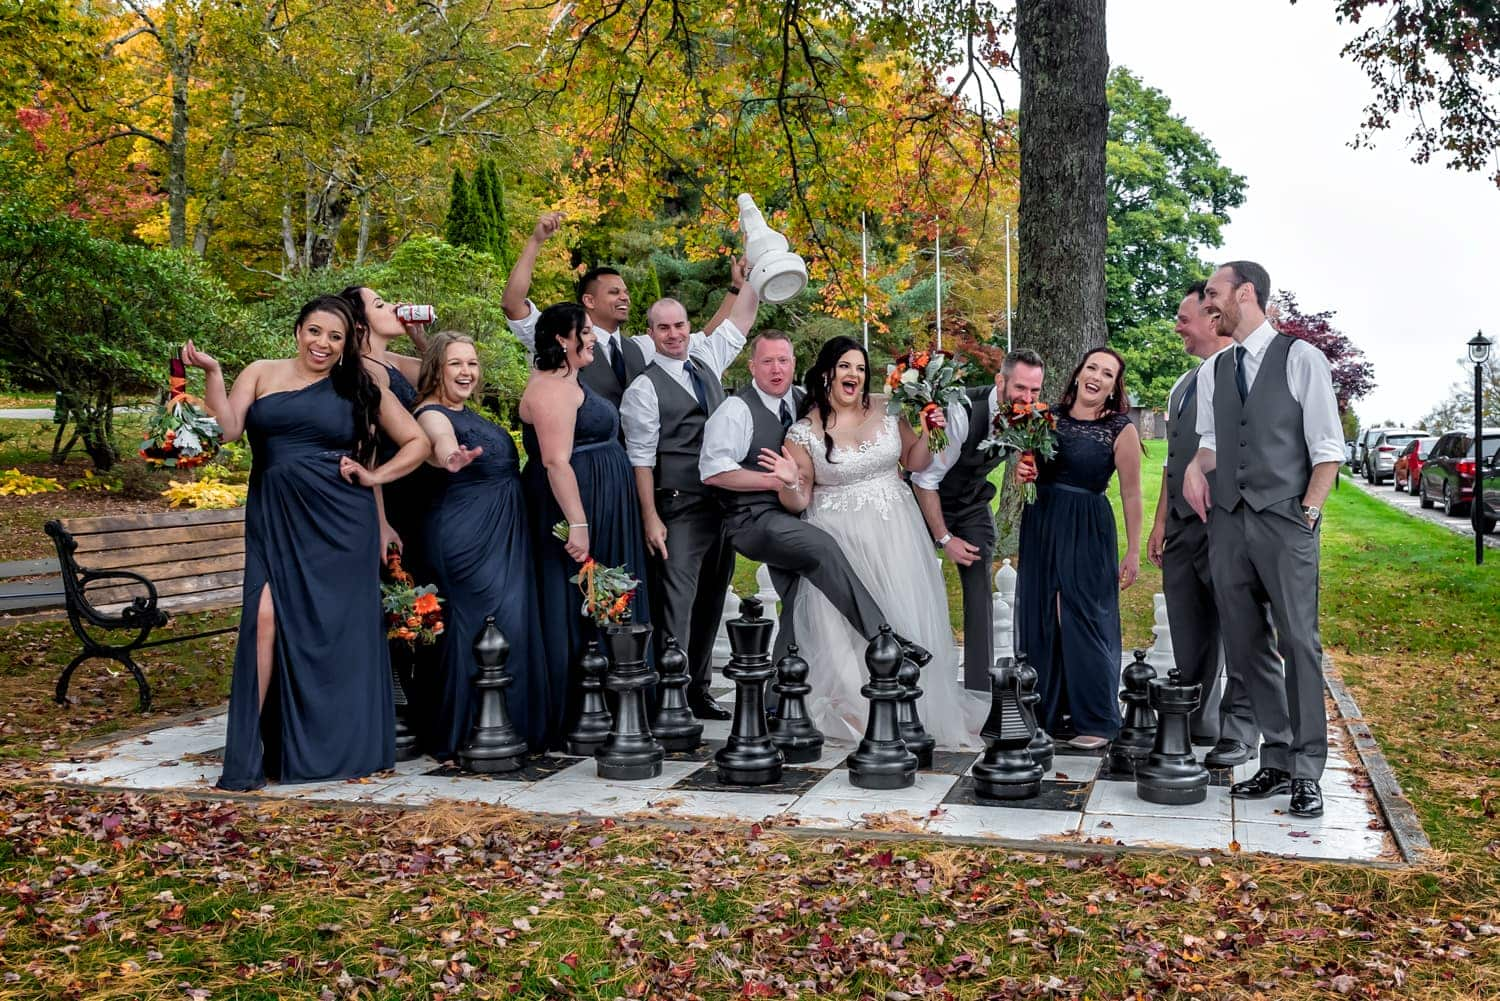 funny wedding party photos at a Digby Pines wedding with the bride and groom on a giant chessboard